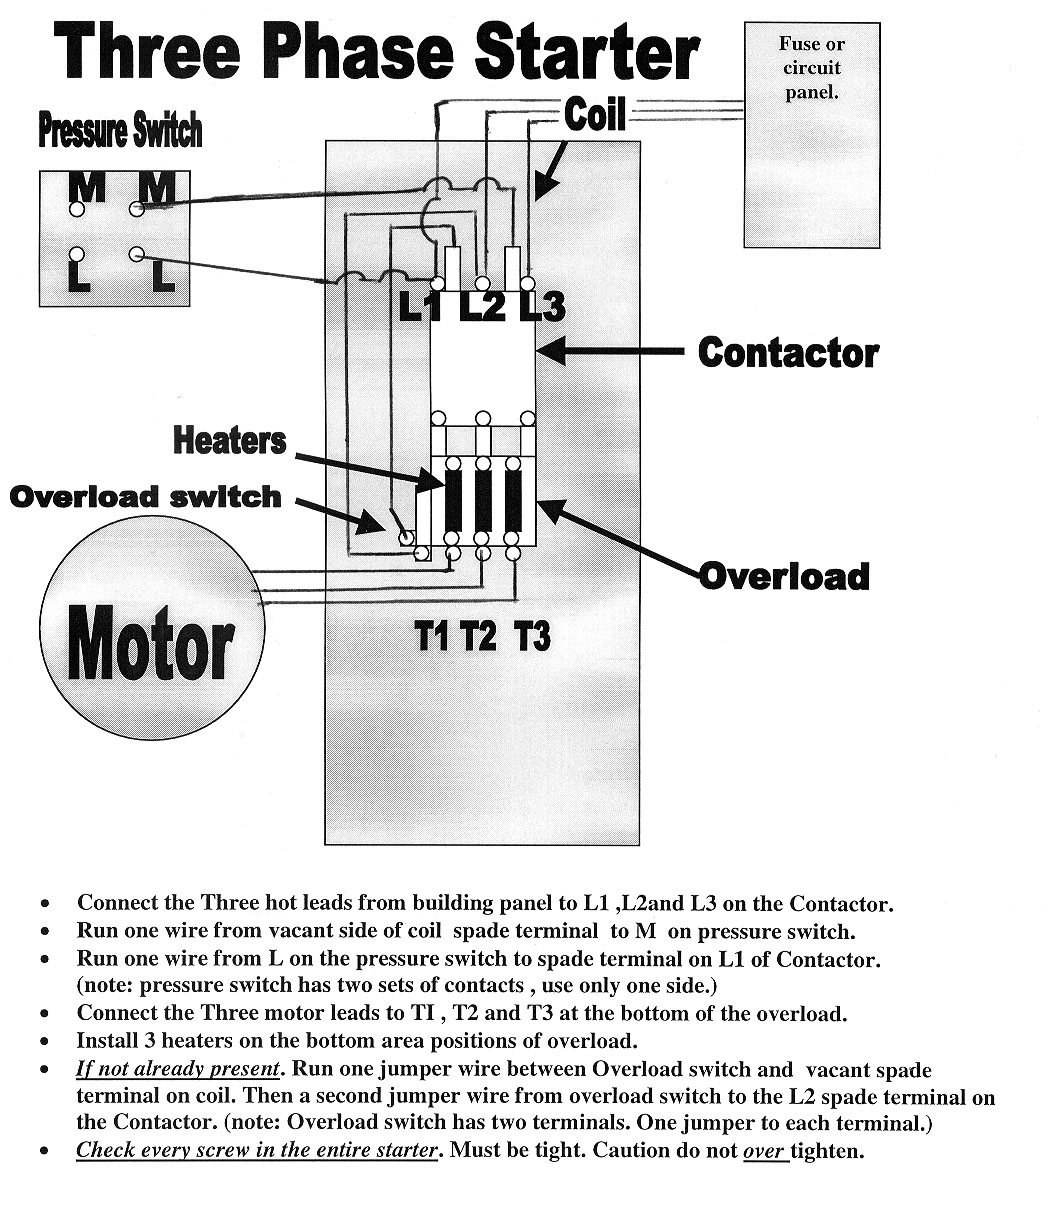 hight resolution of 3 phase switch wiring diagram wiring library diagram h9 480 240 120 transformer wiring diagram 3 phase switch wiring diagram